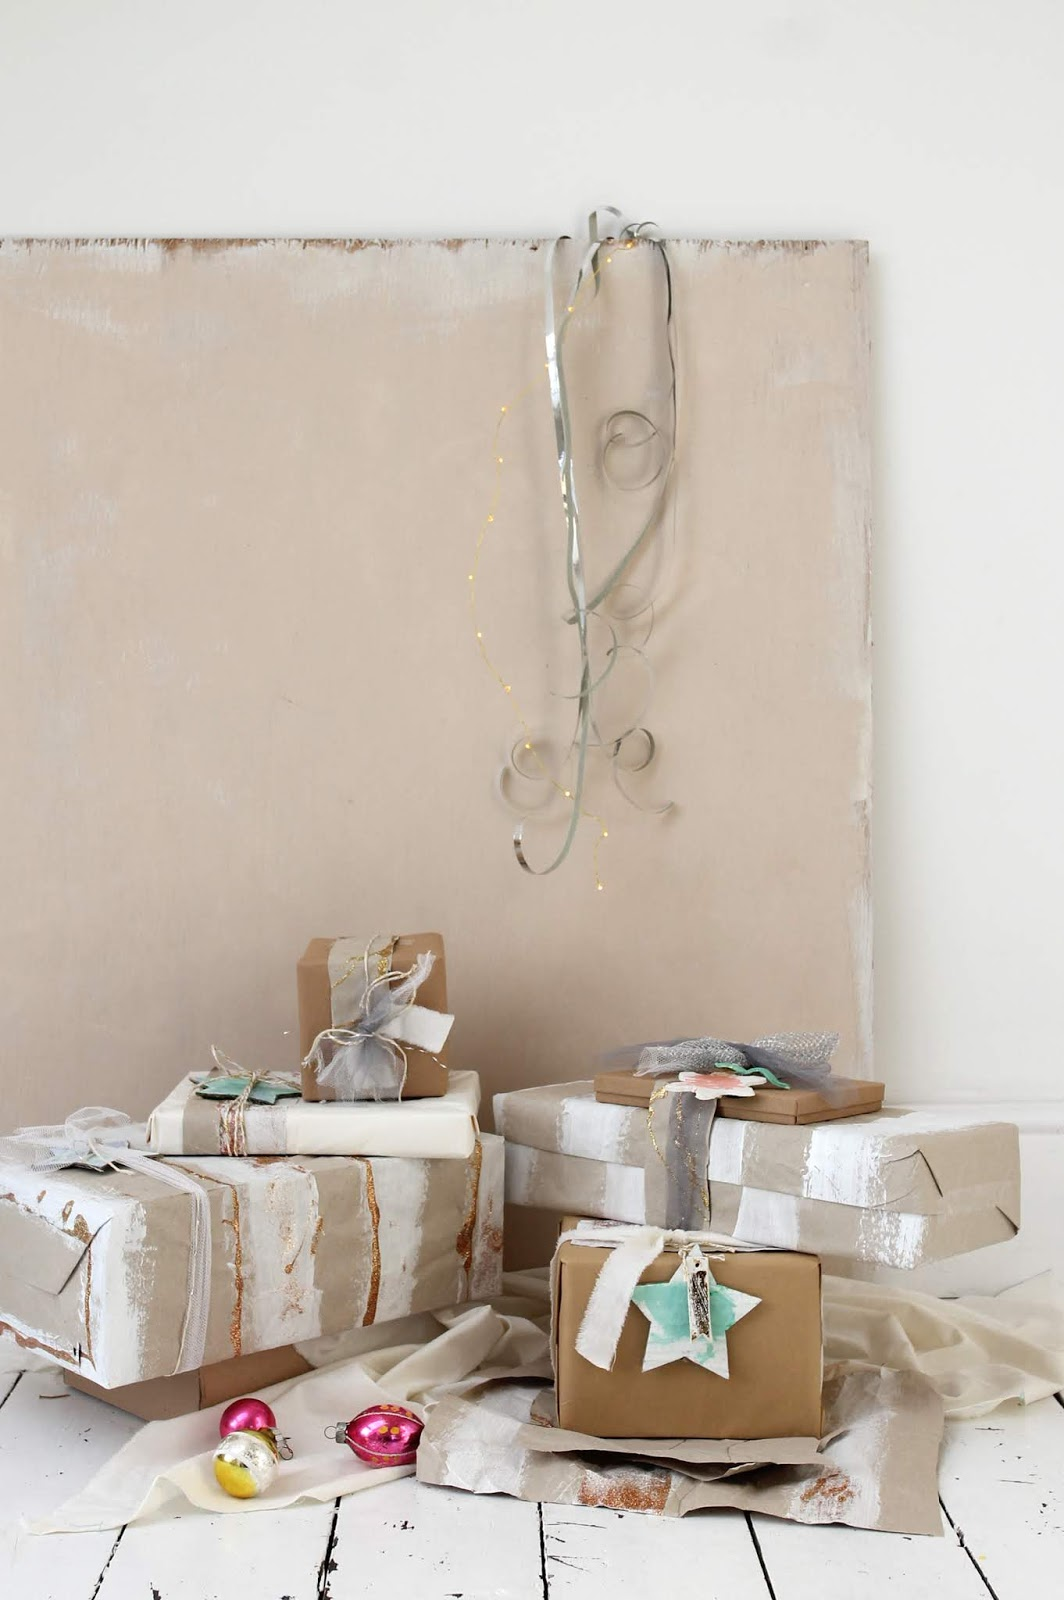 DIY – Upcycled packaging gift wrap